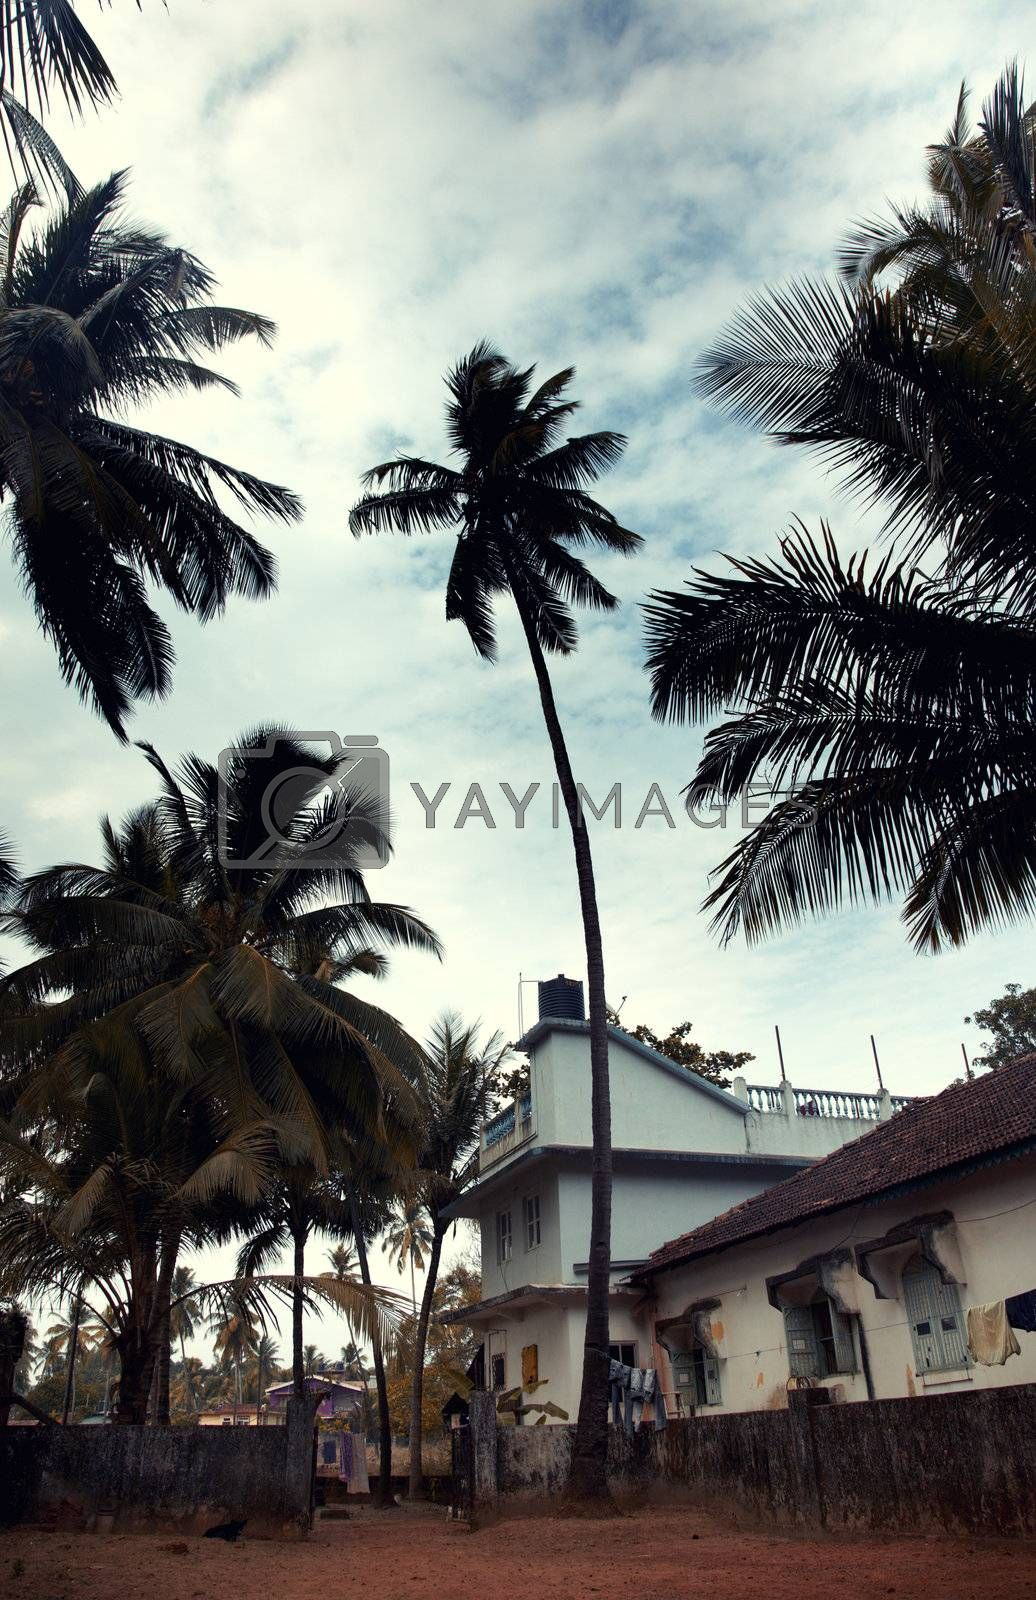 Small hotels in the tropical place with palms